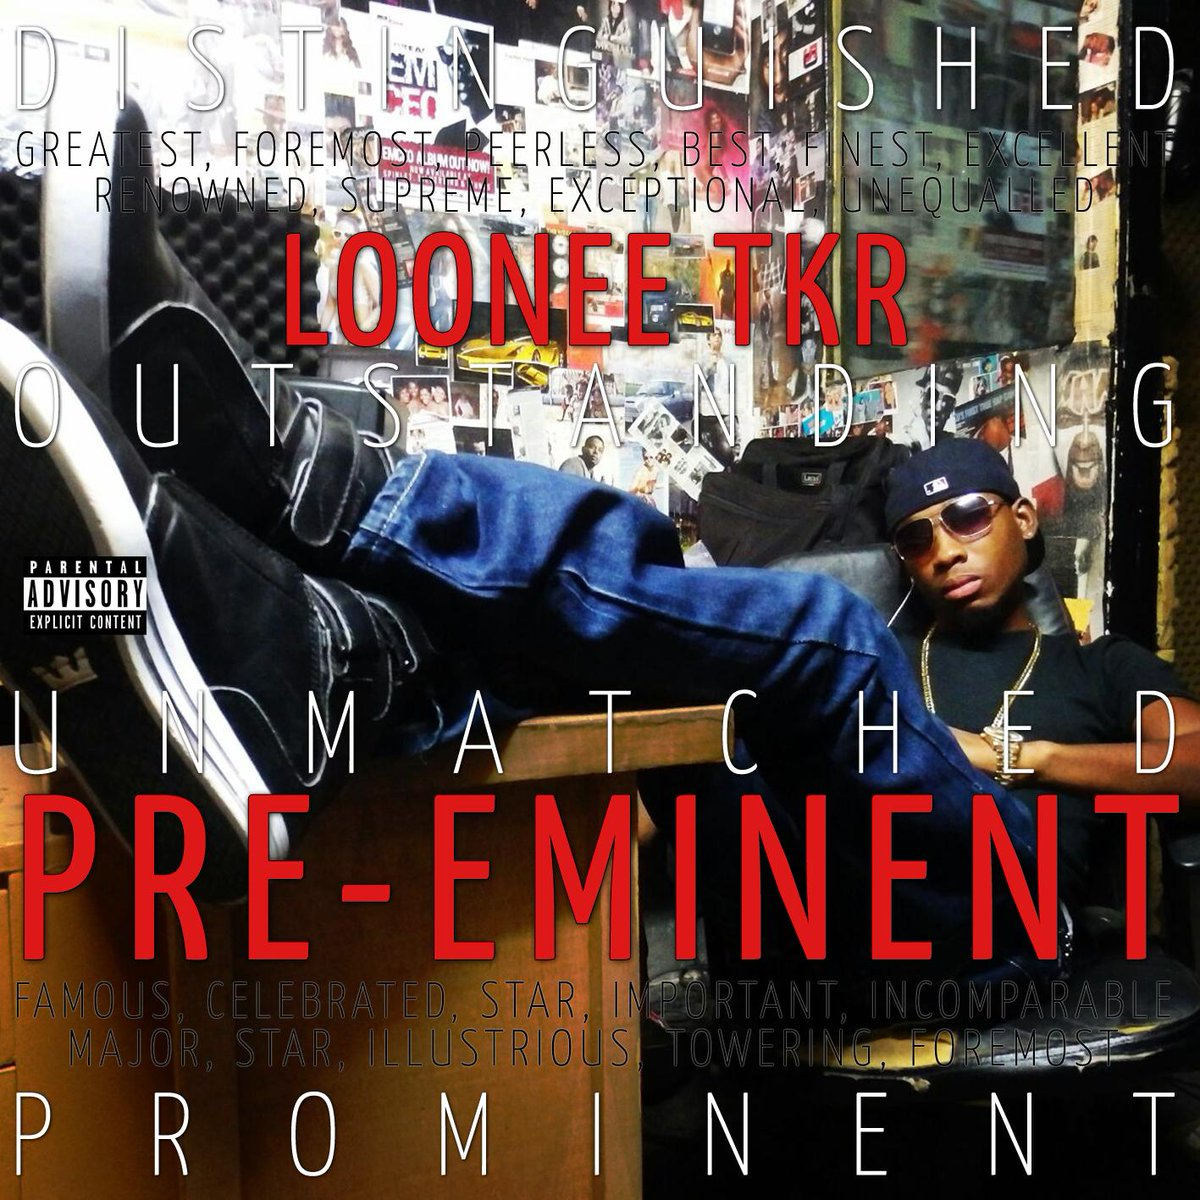 #preeminent is coming @looneegh @Unkle_18 @Lyricalwanzam @KelvinWulve @selormjay @IsCreamGH ~@crymerecords http://t.co/YtpBVjUODF